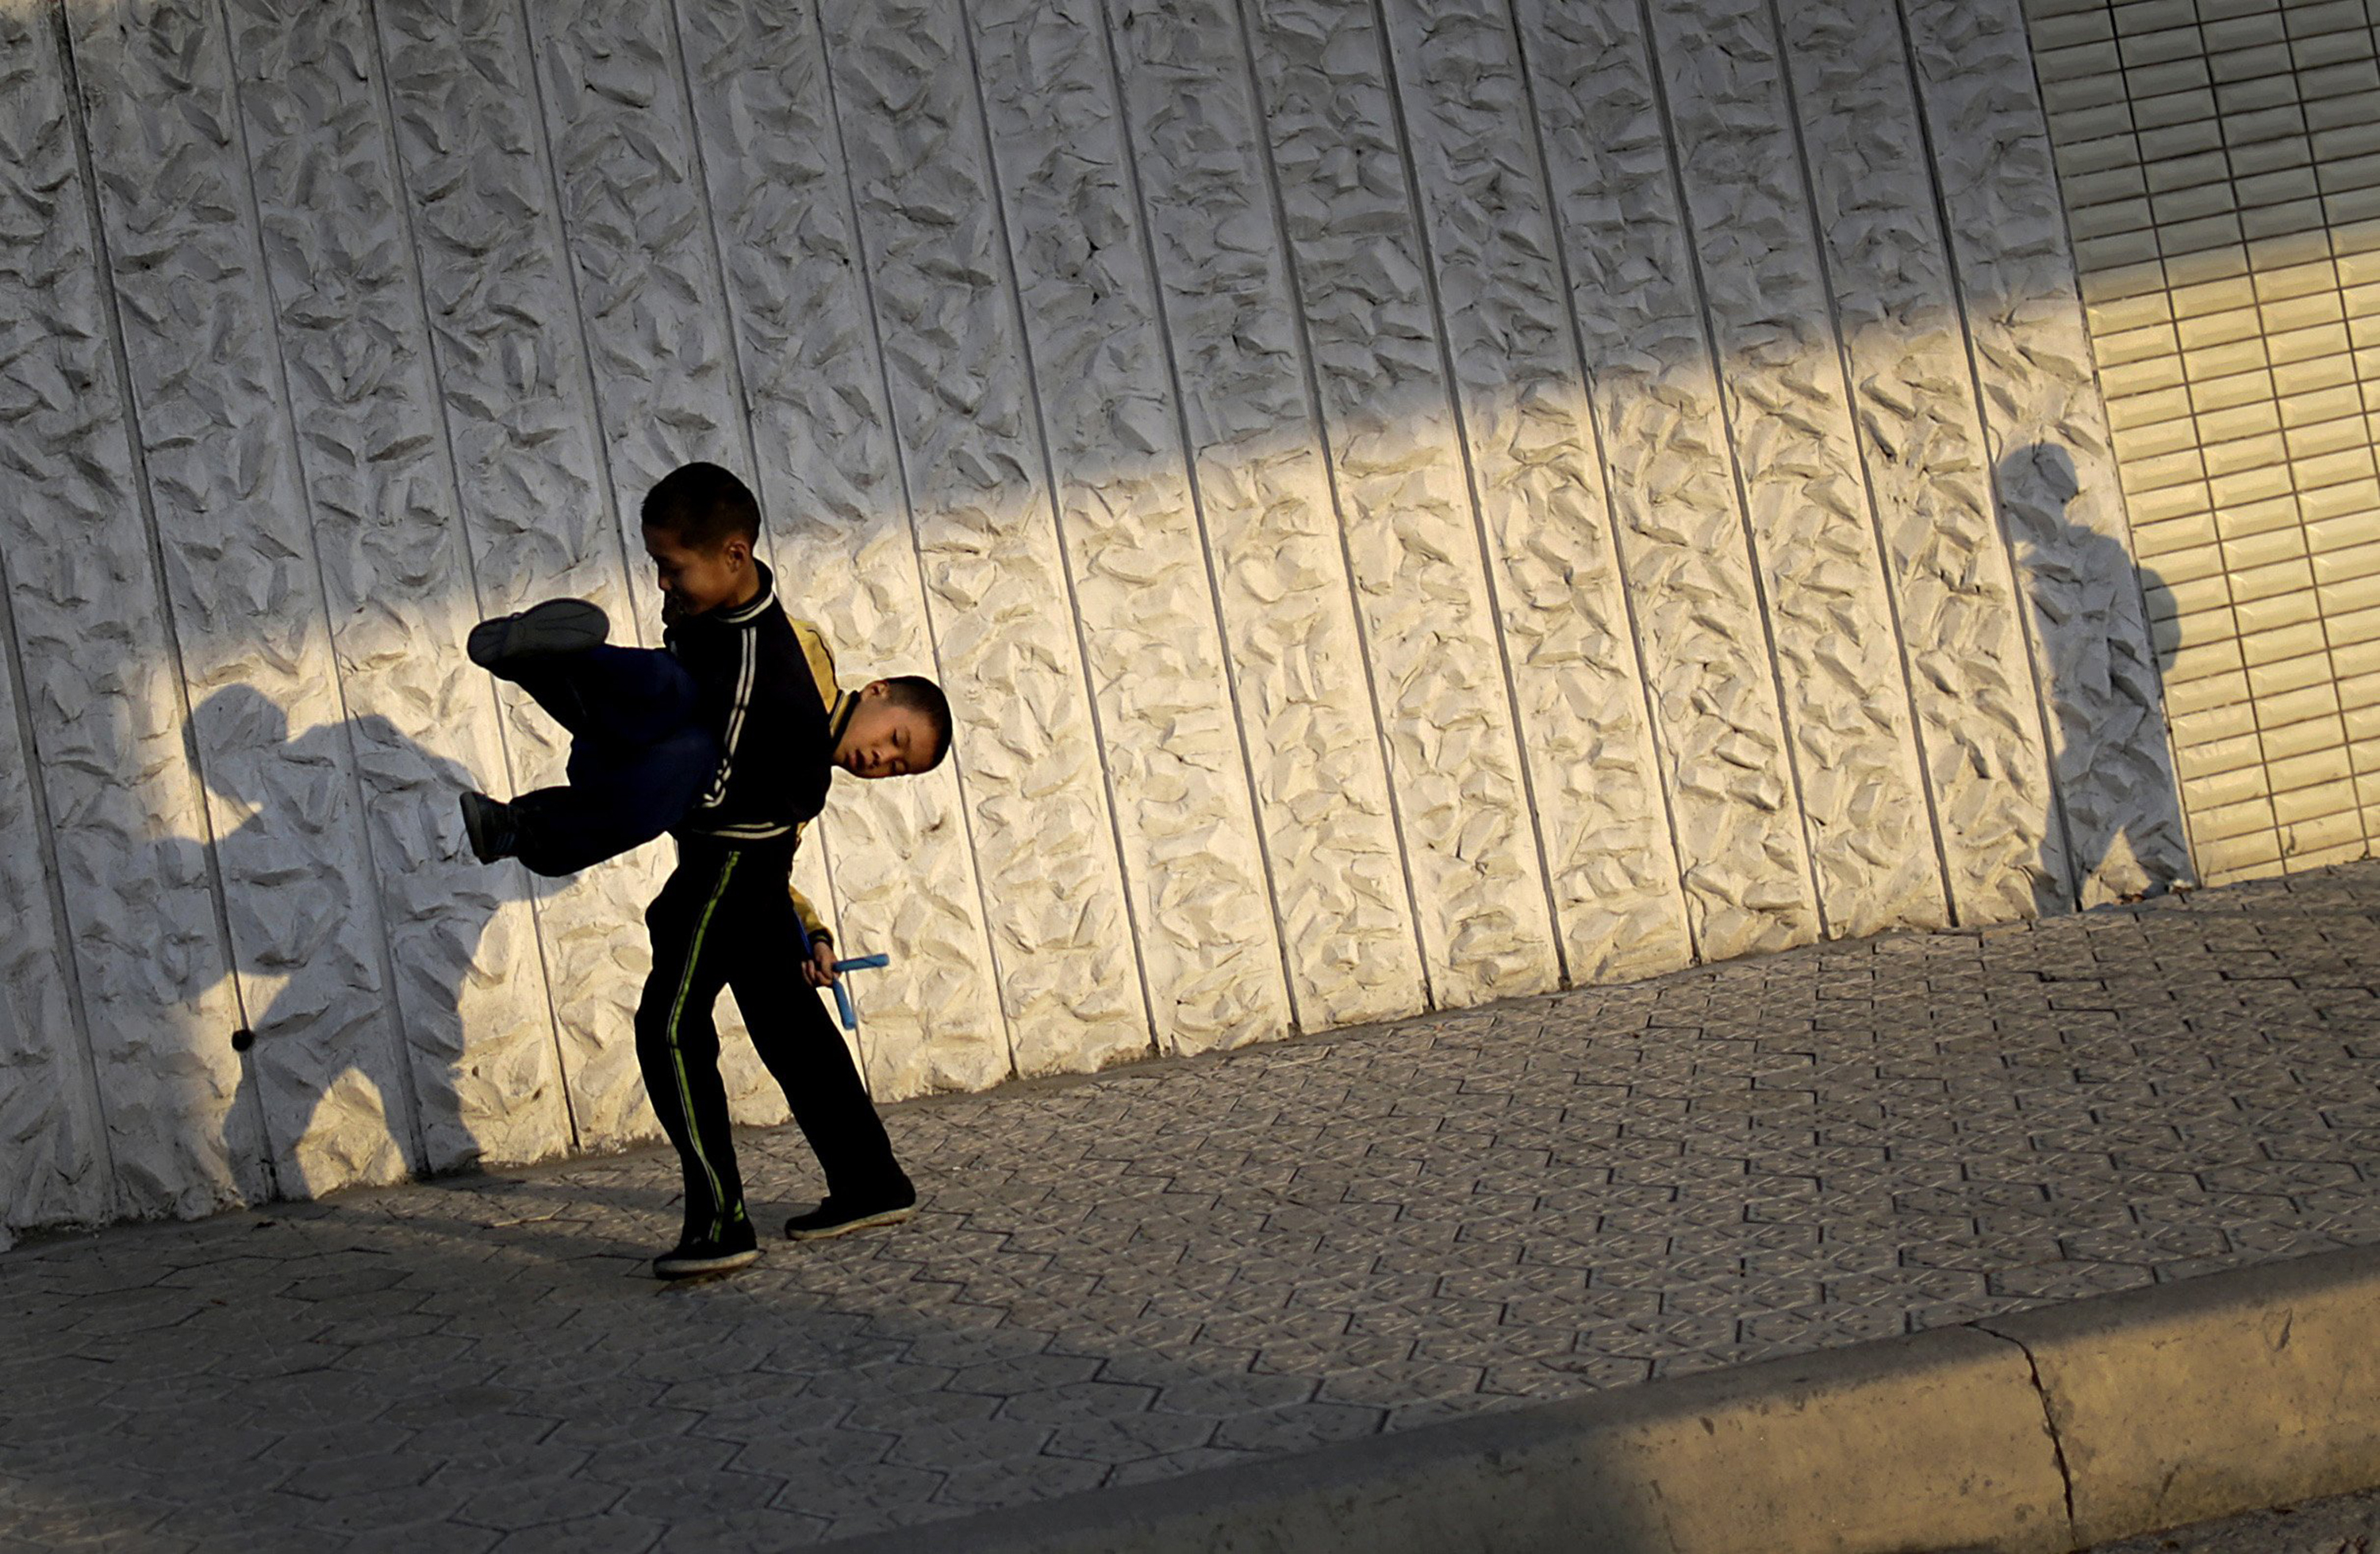 The evening sun casts shadows of North Korean boys on an apartment building facade as they make their way down a street in Pyongyang on Oct. 22, 2014.